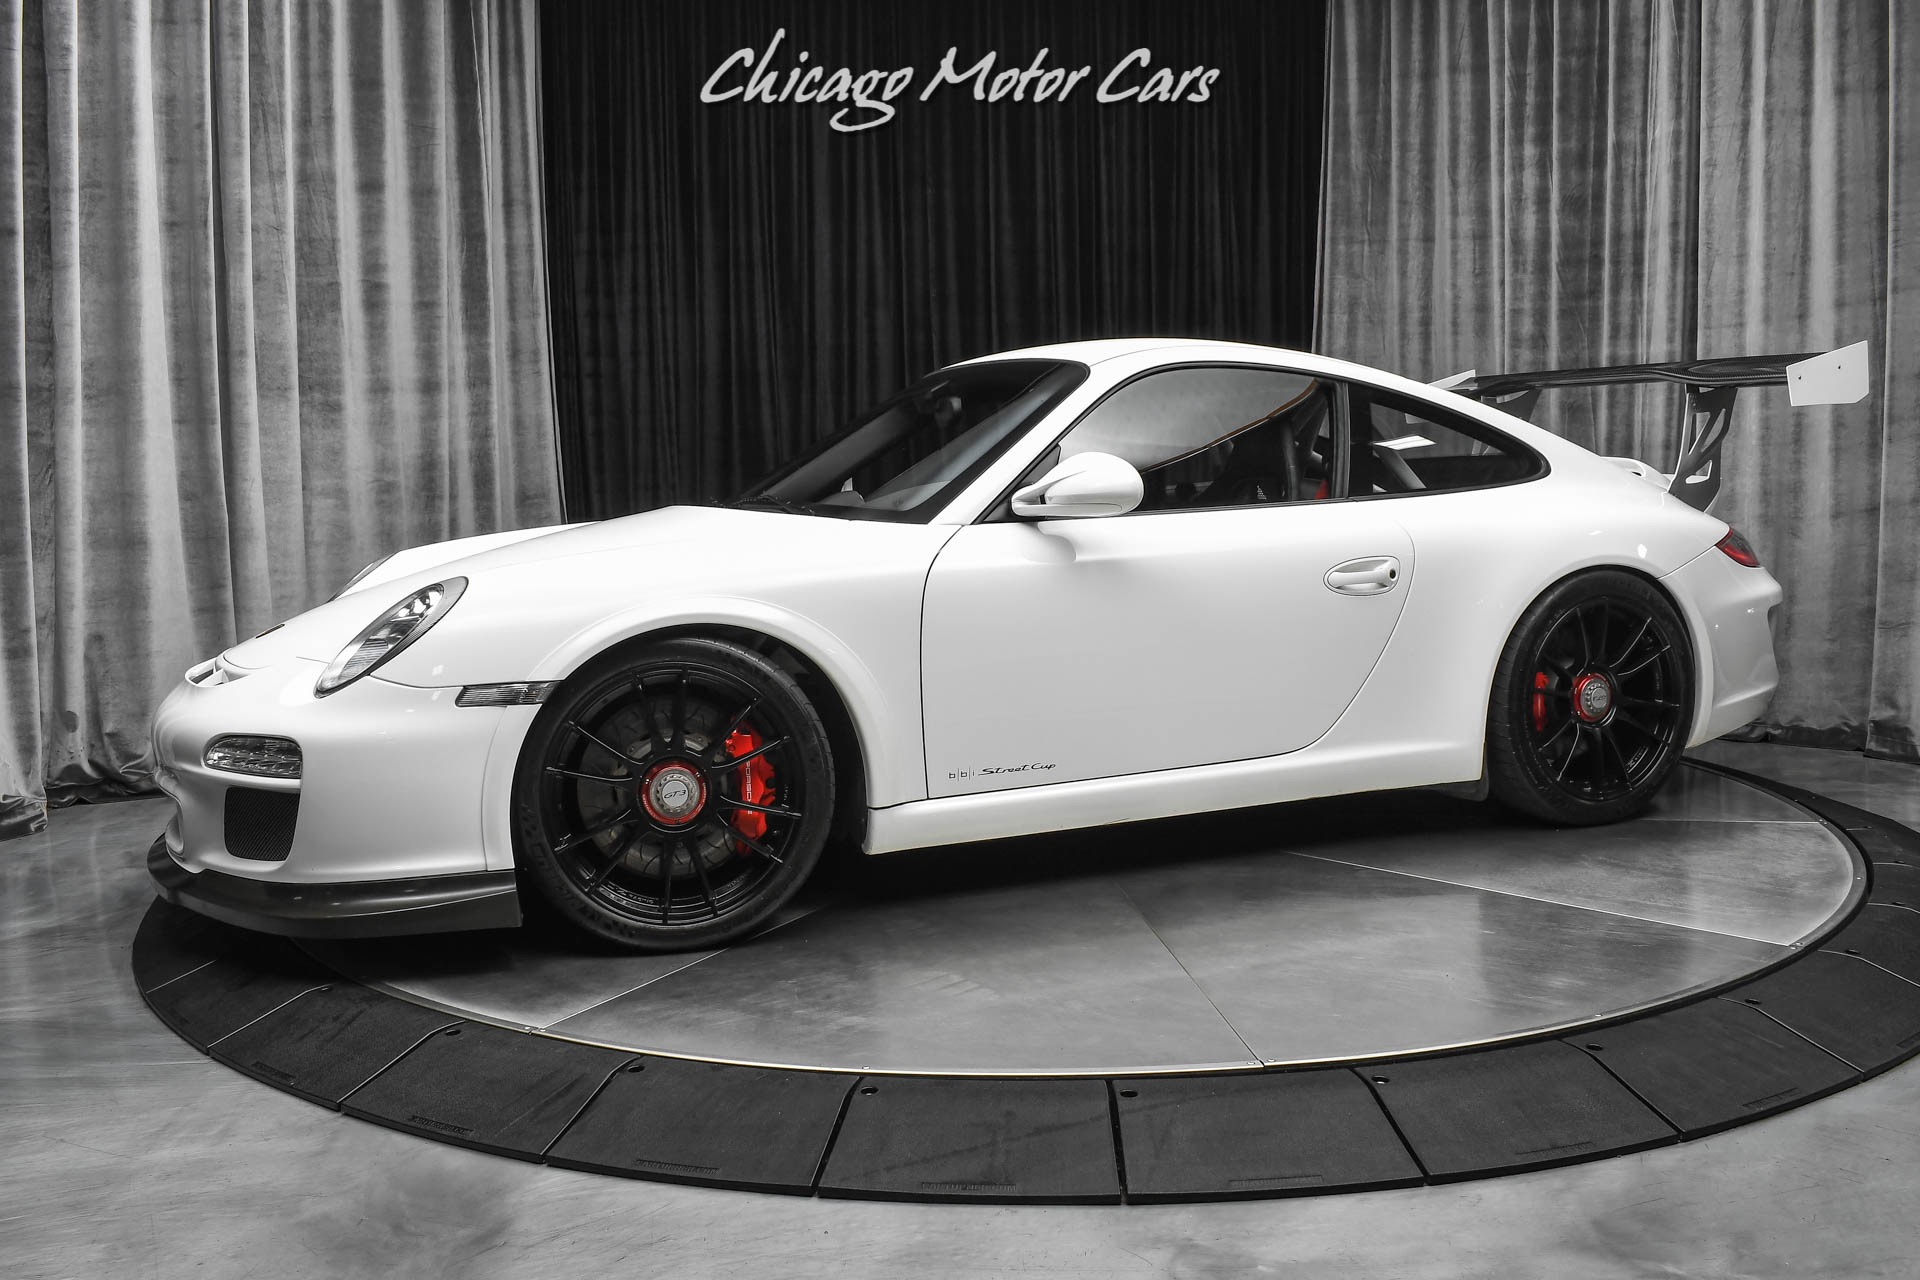 Used-2011-Porsche-911-GT3-CupRS-Upgrades-6-Speed-Manual-1-of-3-GT3-Produced-in-2011